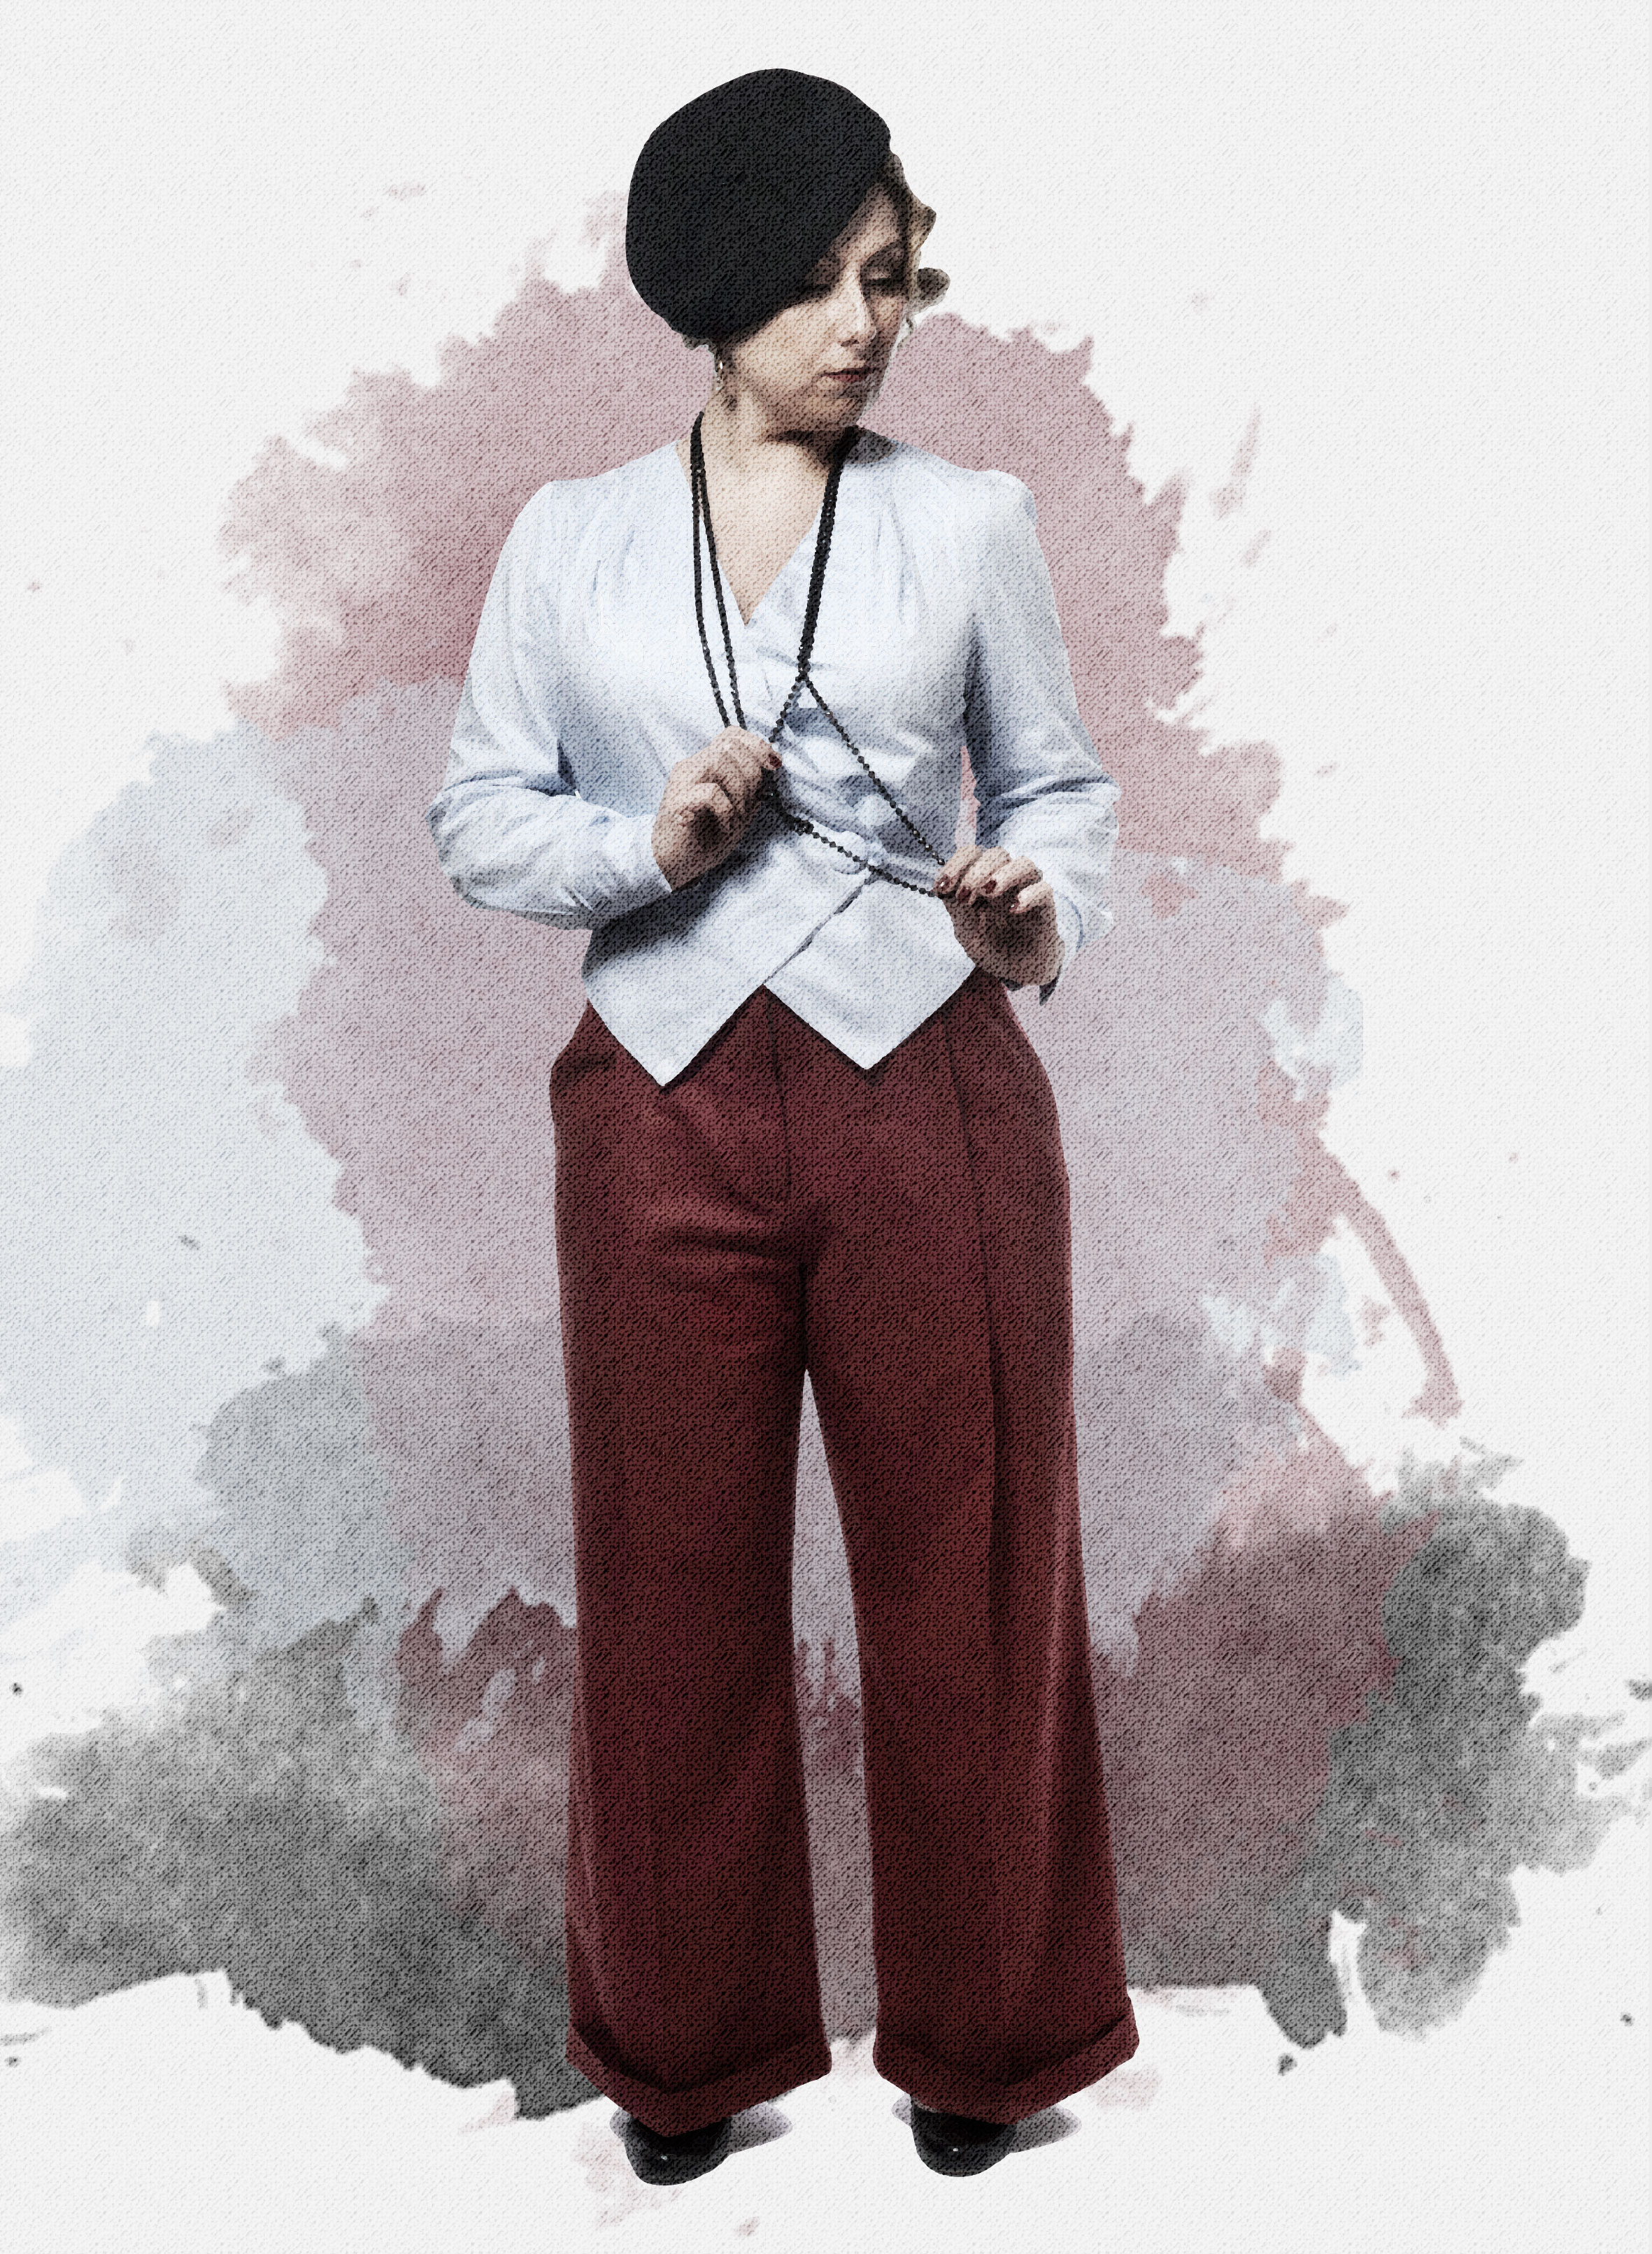 No. 14 Madrid - These trousers are inspired by the masculinity of 1940s female fashion. They have all the details of male trousers, and yet are perfectly fitted for a woman's shape to underline her fierceness.